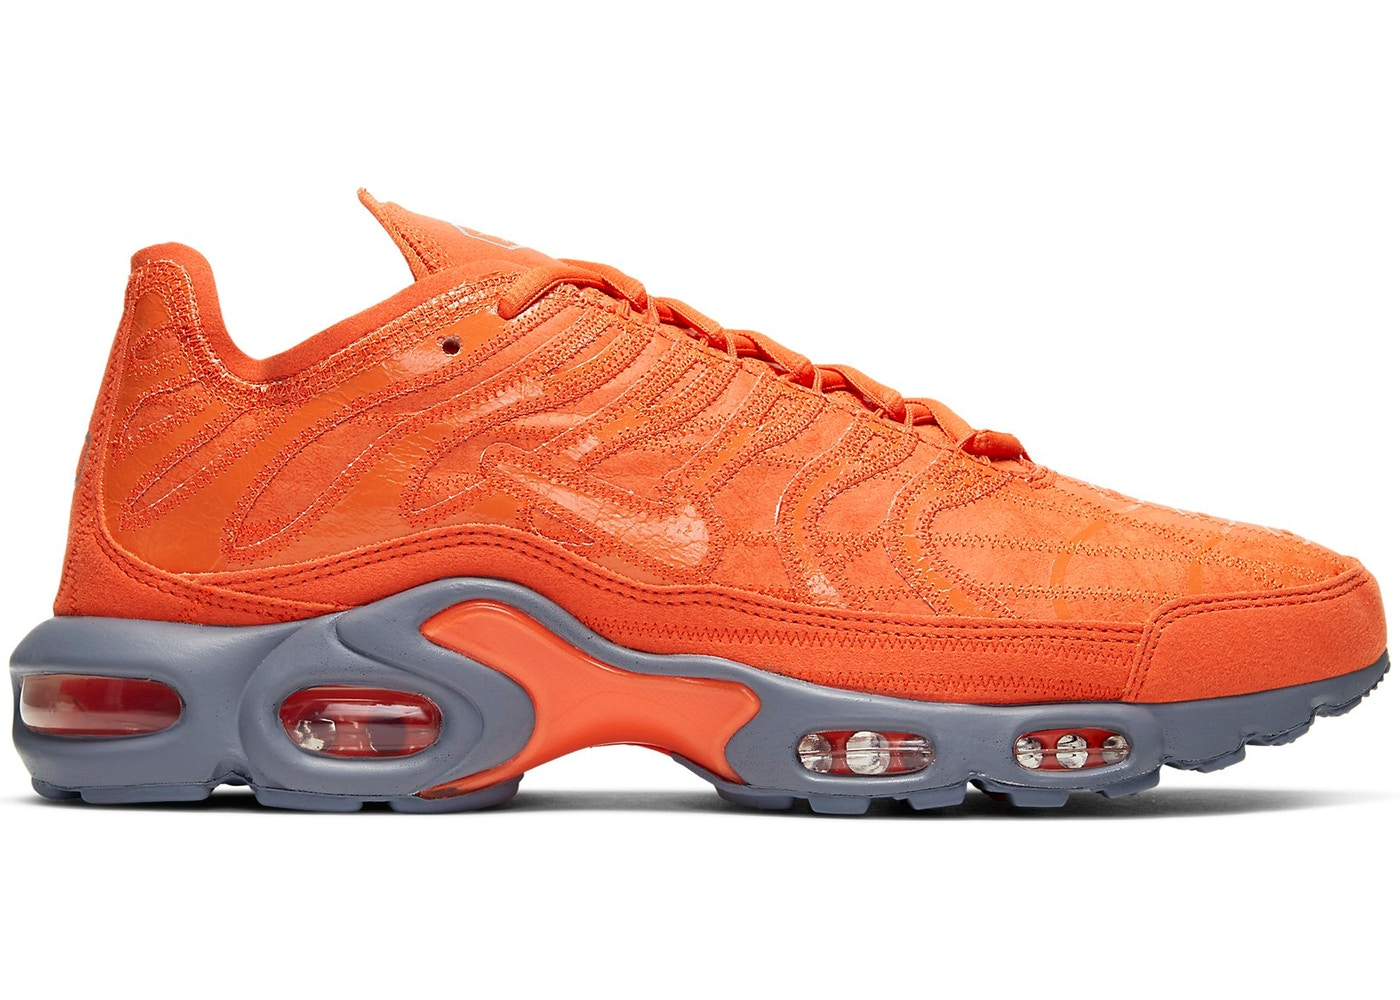 Nike Air Max Plus Decon Orange Cd0882 800